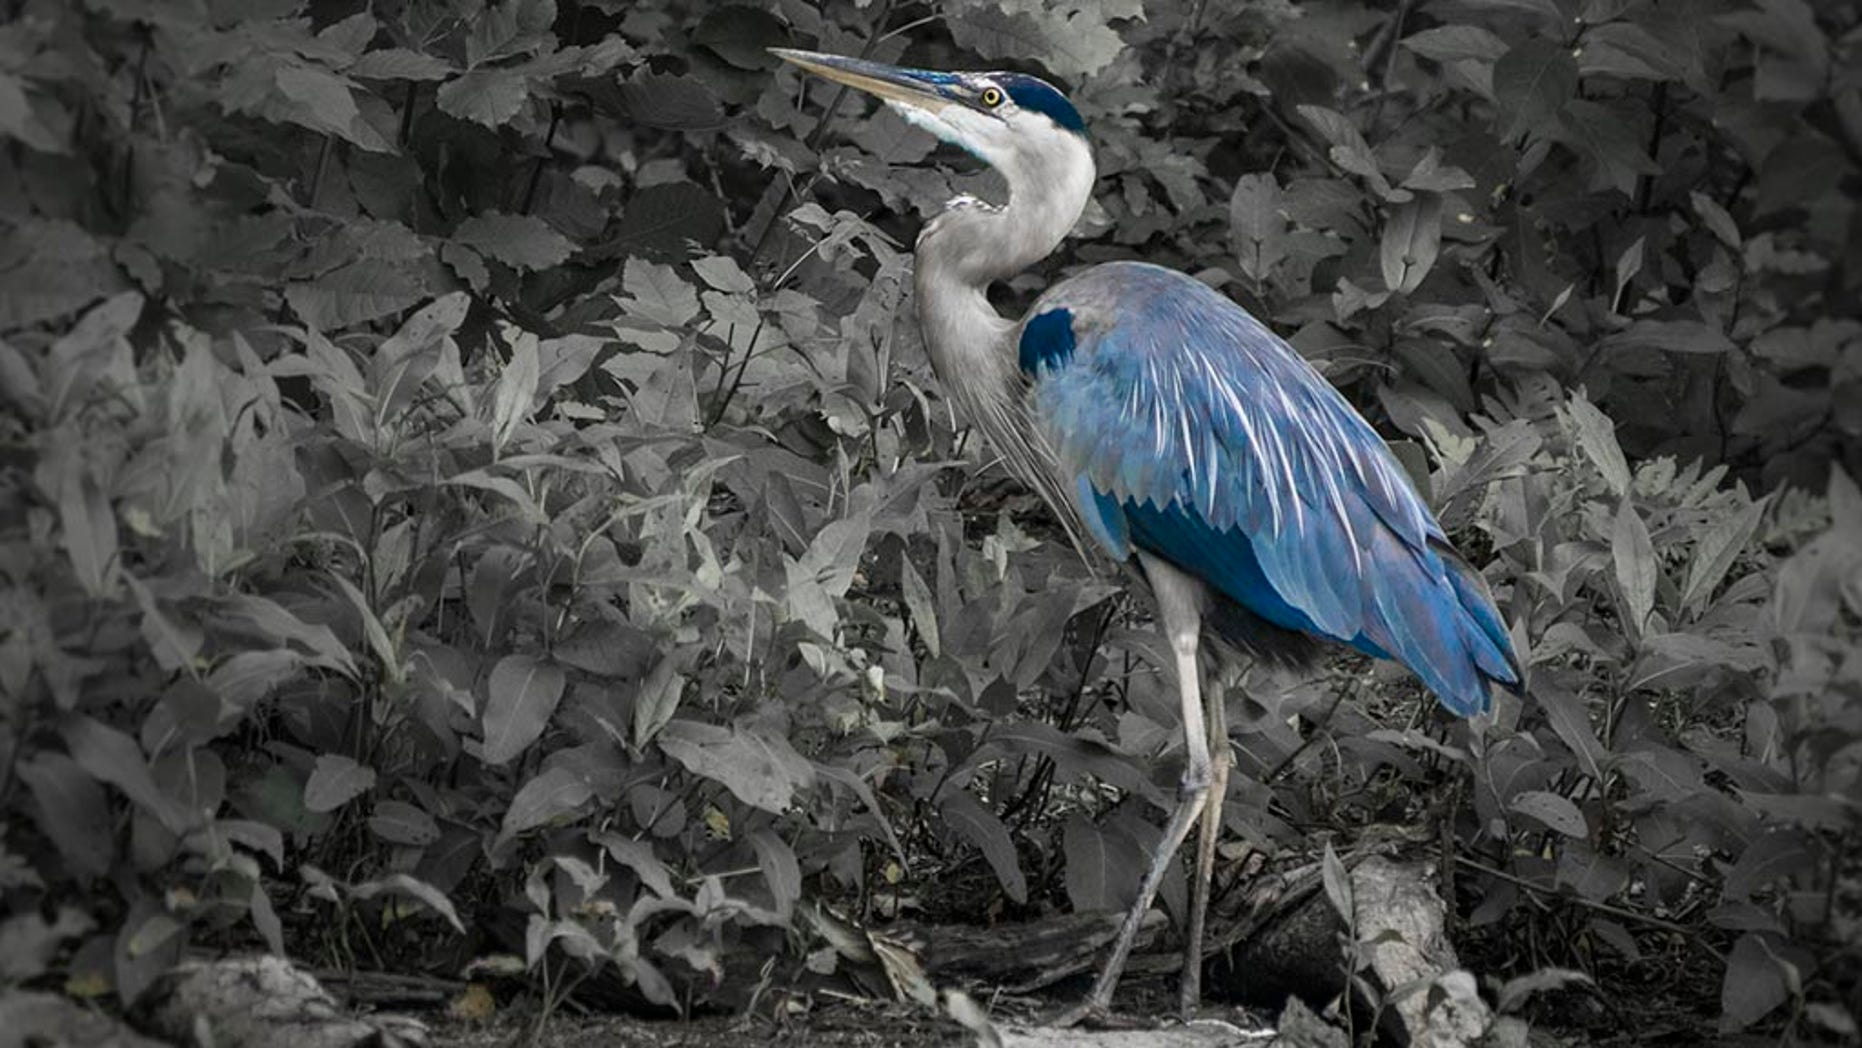 Does Central Park's Mandarin duck have competition with a Great Blue Heron?